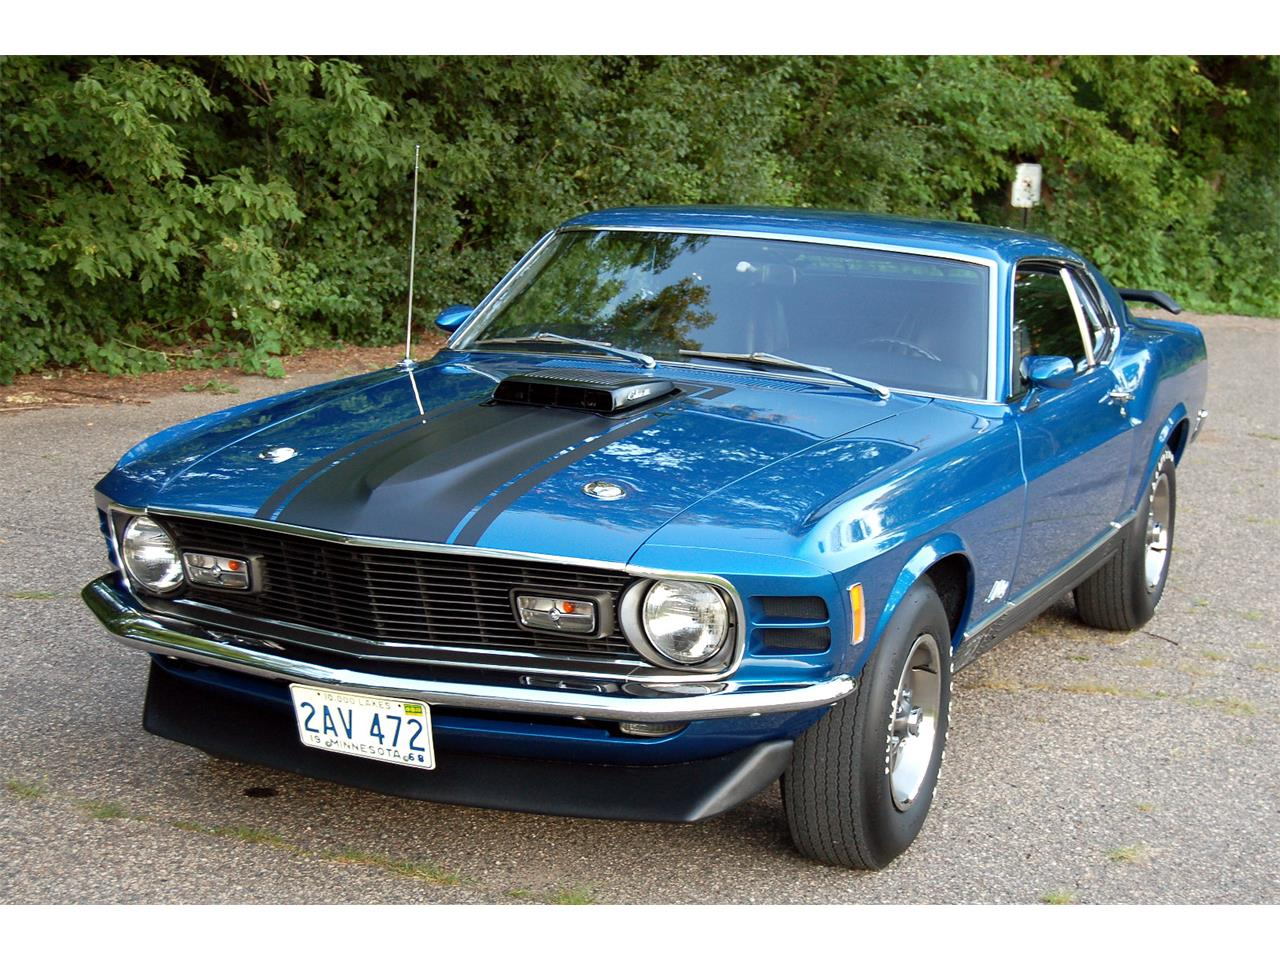 1970 Ford Mustang Mach 1 for Sale | ClassicCars.com | CC-834553